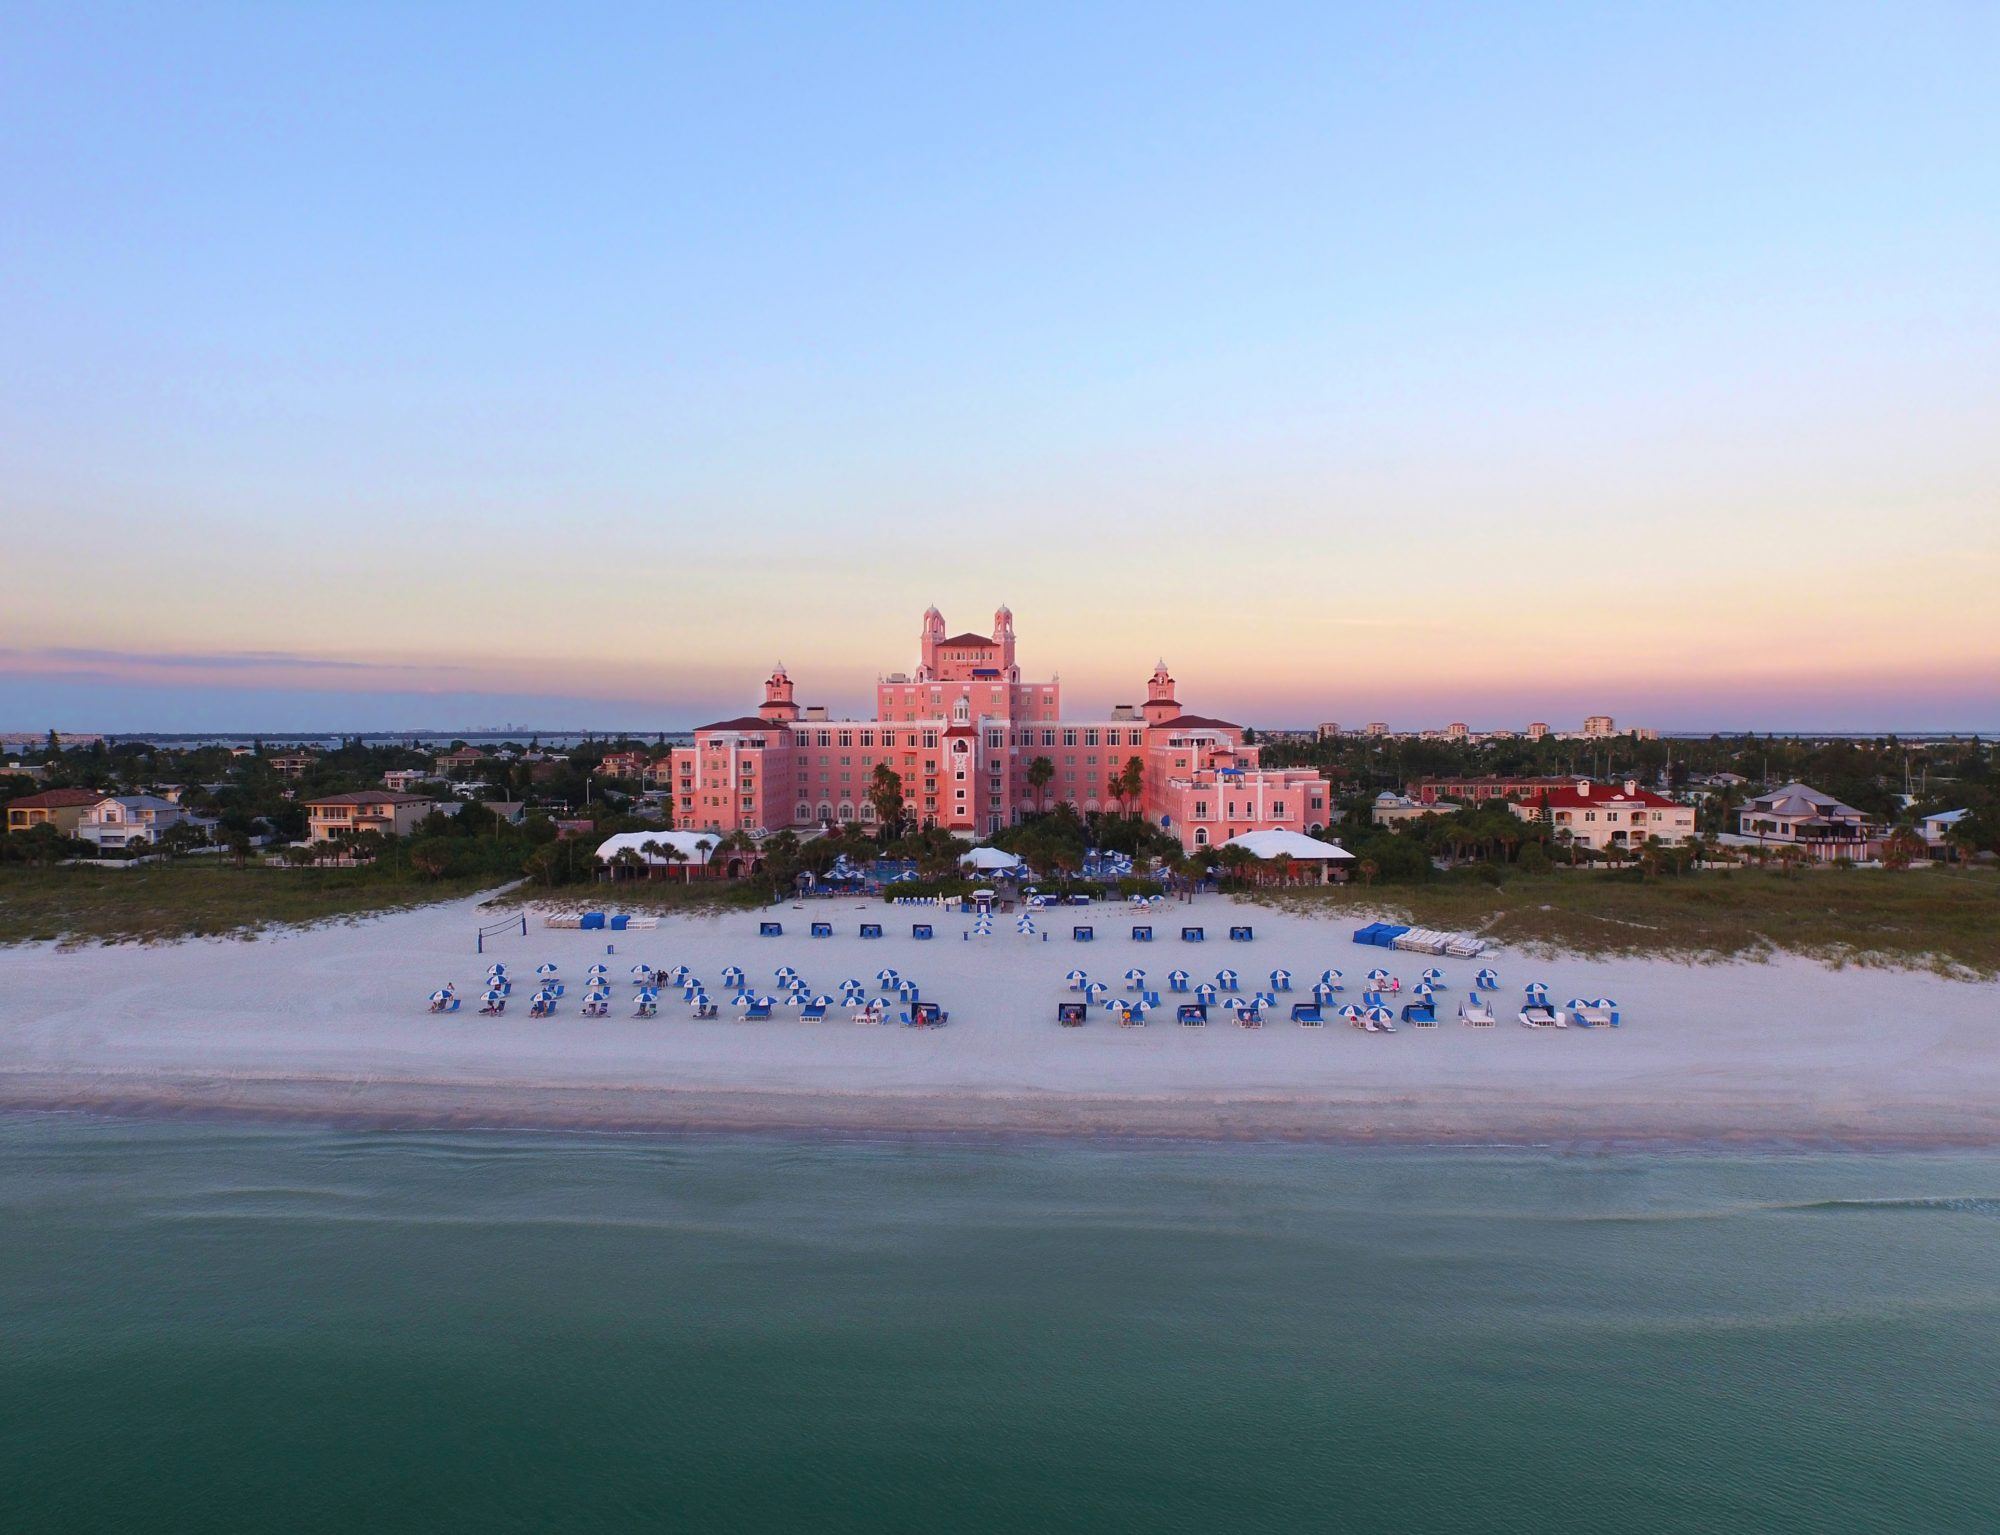 """Reminiscent of a Mediterranean-style castle with its coral pink exterior and striking architecture, The Don CeSar towers over St. Pete Beach like a crown jewel. Known as Florida's iconic """"Pink Palace,"""" the hotel opened at the height of the Great Gatsby era in 1928. Go hunting for shells on the powdery white-sand beach, take a banana boat ride in the warm waters of the Gulf of Mexico, and then head to Uncle Andy's Ice Cream Parlor where you'll find nostalgic treats and homemade ice cream. 3400 Gulf Boulevard, St. Pete Beach, FL 33706"""